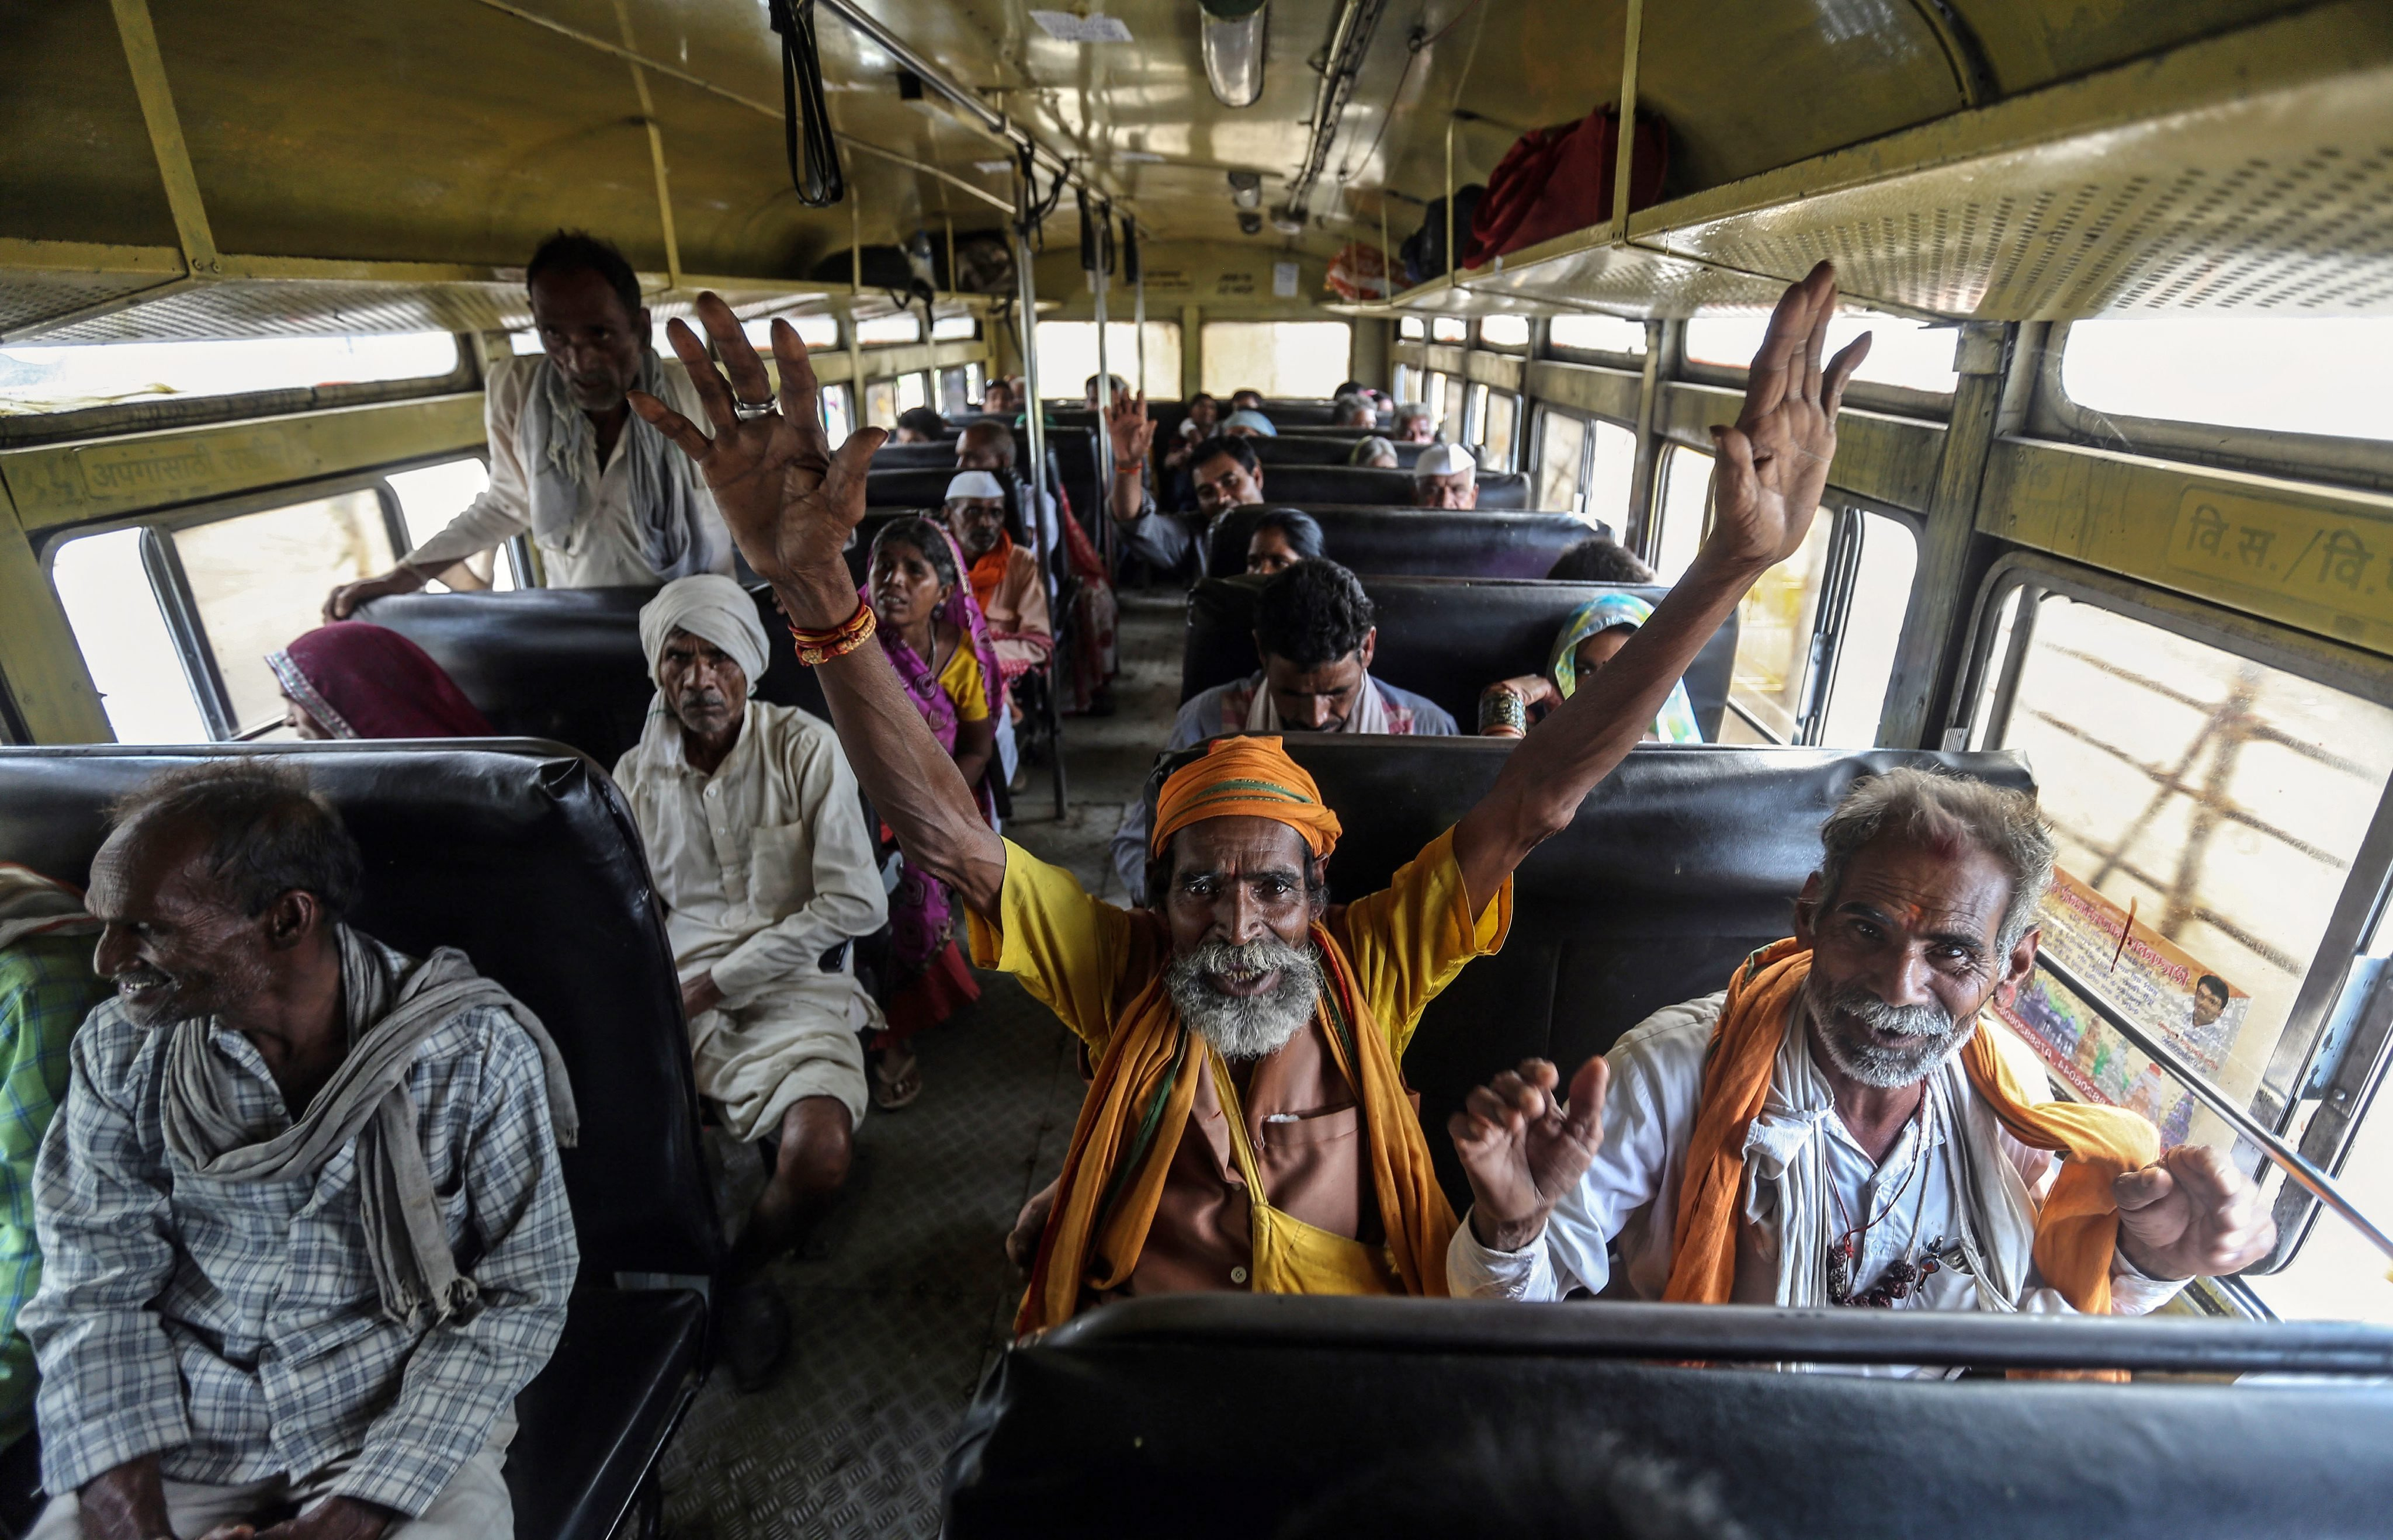 Indian sadhu or holy men shout religious slogans in the bus as they leave from Trimbakeshwar Temple during the Kumbh Mela festival in Nasik, India, on Aug. 28, 2015.